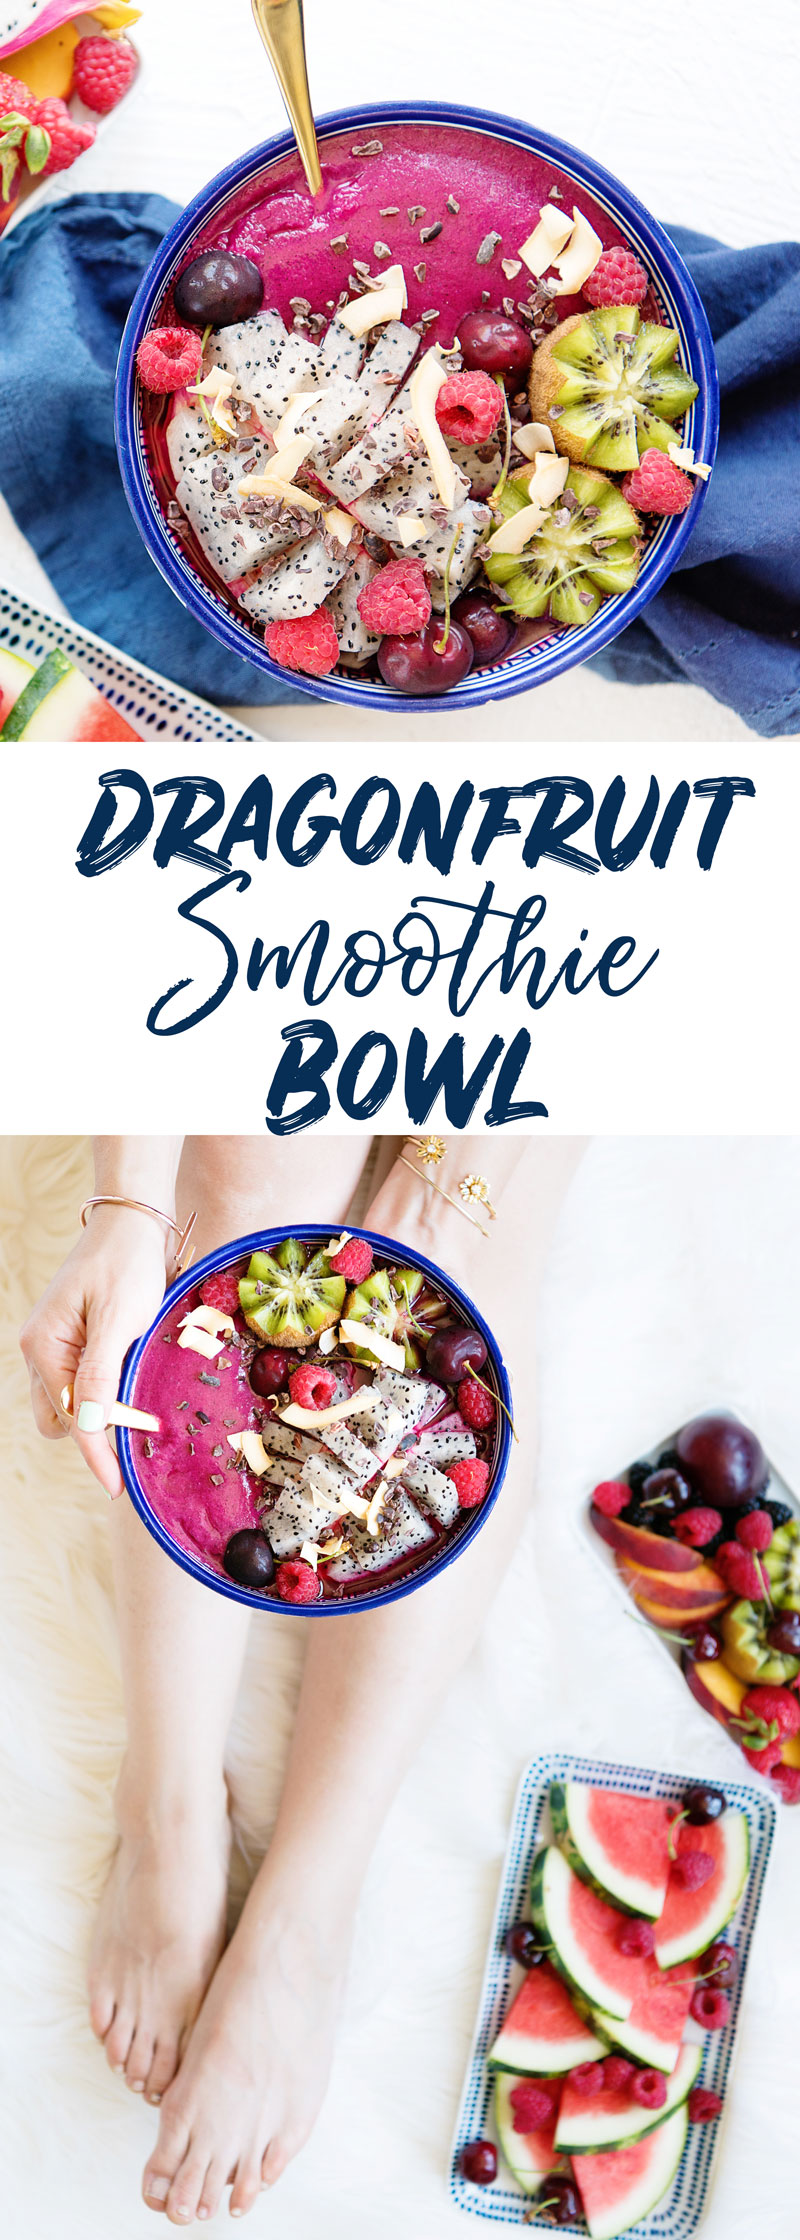 Colorful Smoothie Bowl Dragonfruit Topped with Fresh Fruit Recipe